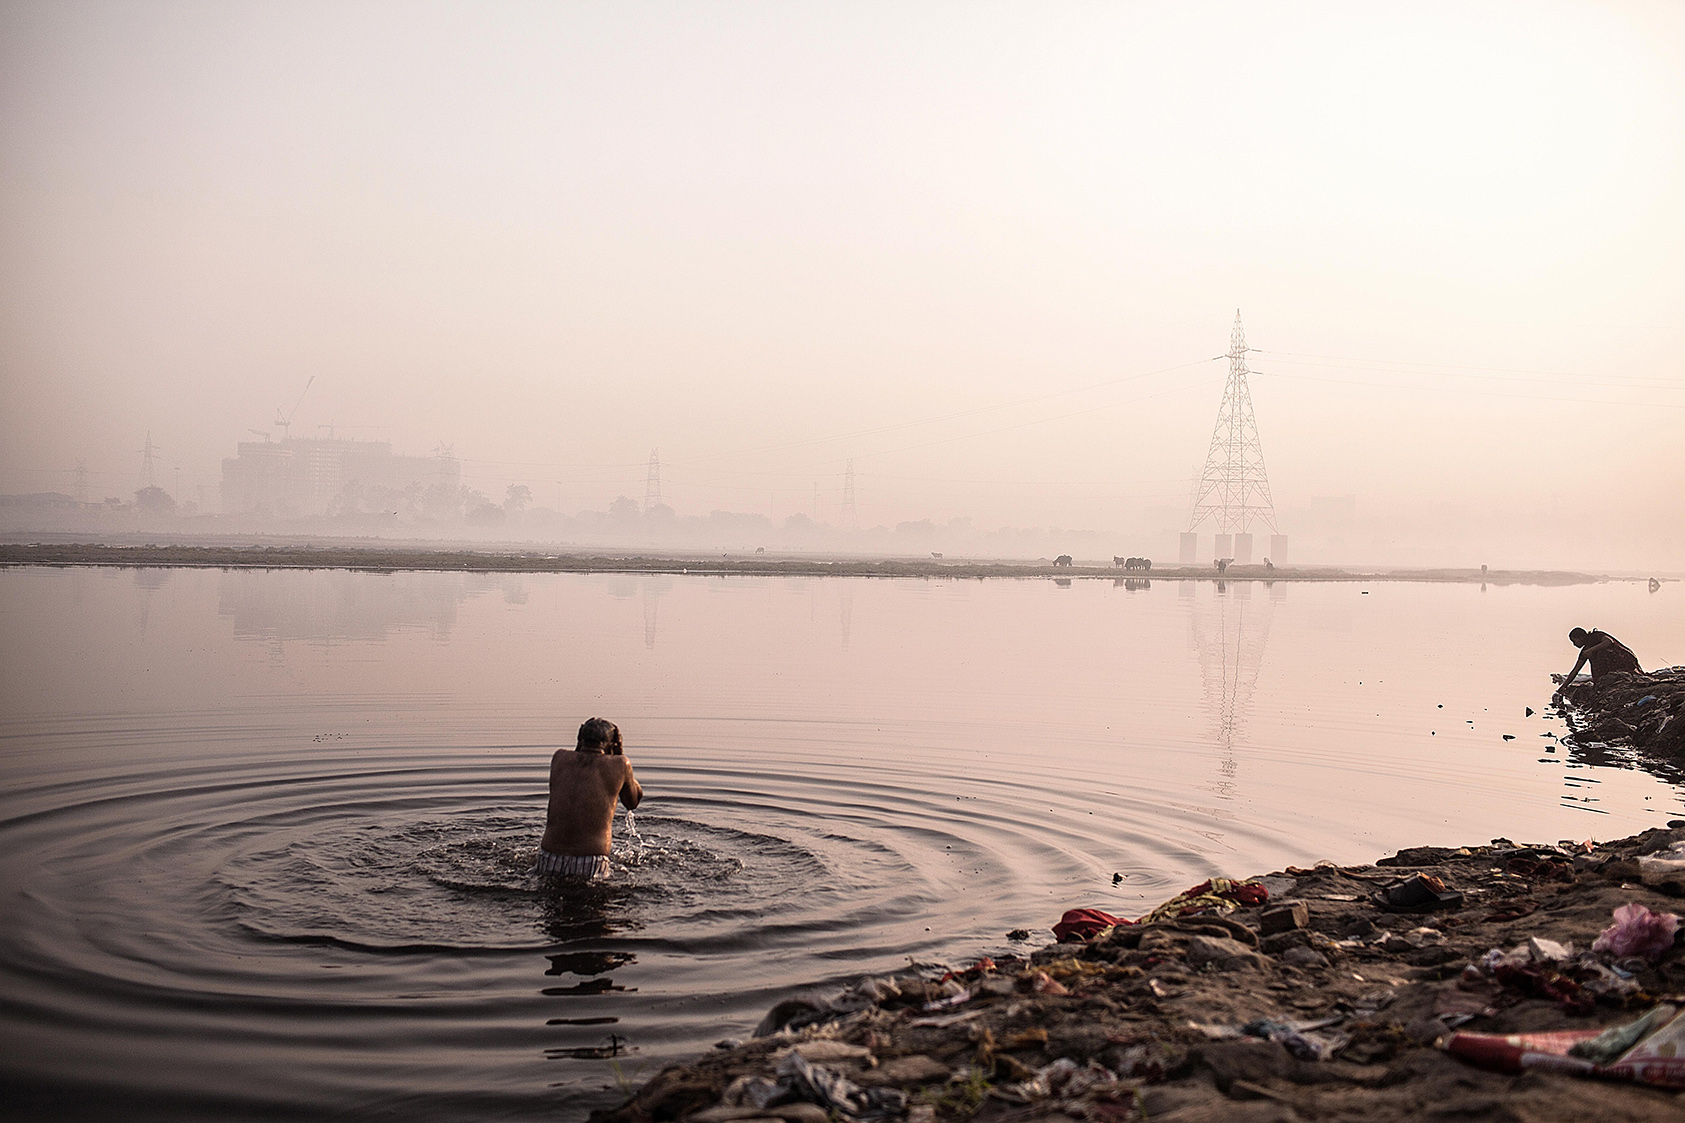 A Hindu devotee offers prayers after a dip in the Yamuna River